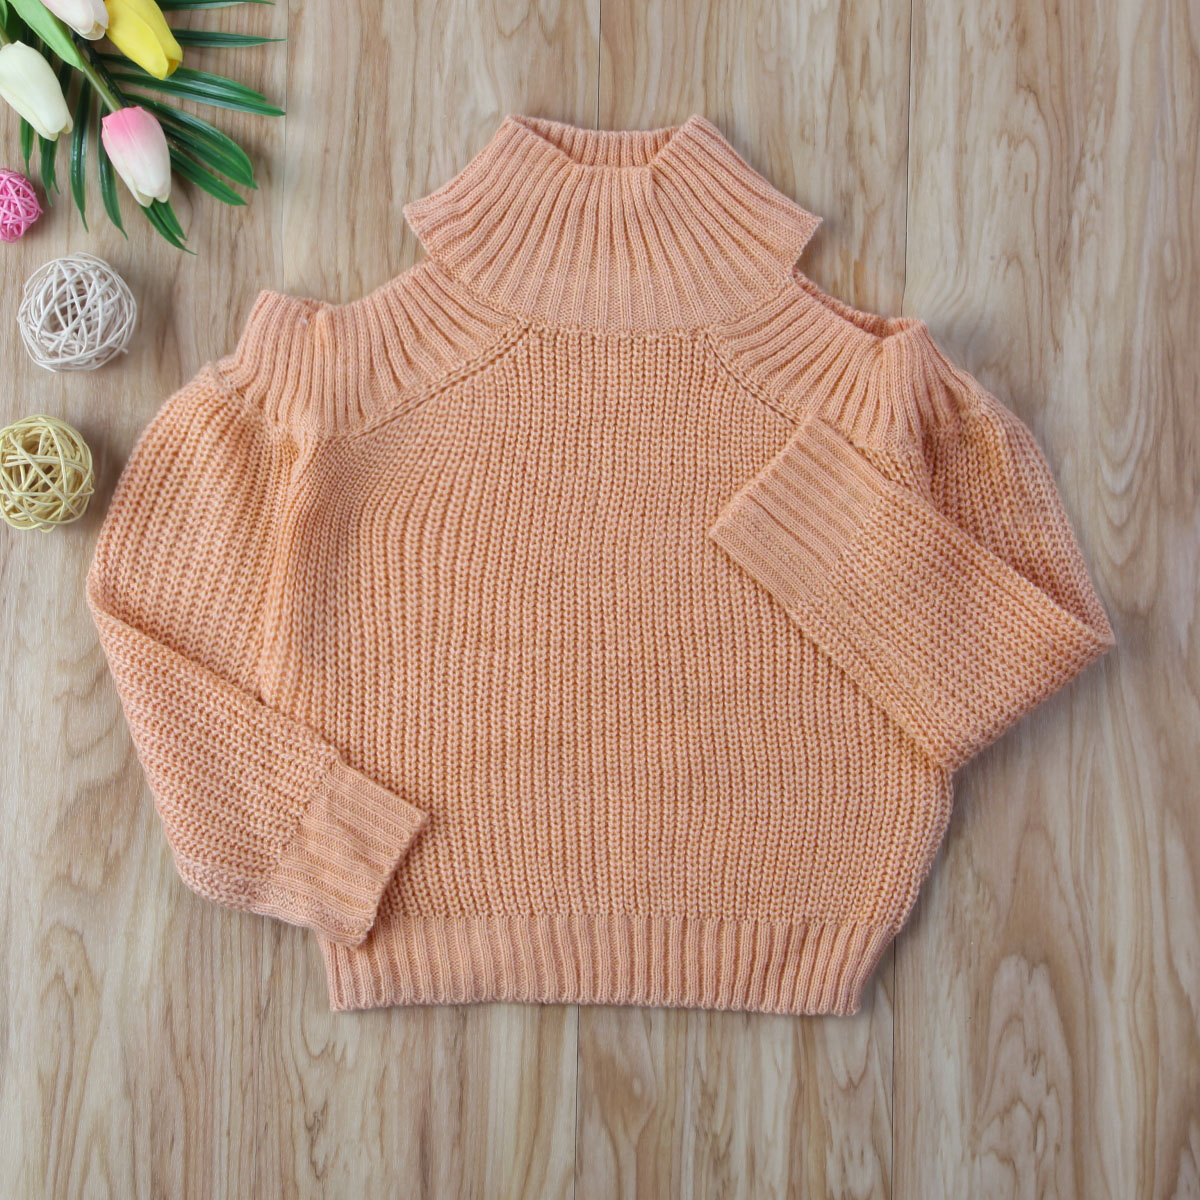 2018 fashion Family Matching Outfit sweaters Mom Baby cold shoulder Long Sleeve Knitwear Jumper Sweater Pullover Family Clothes